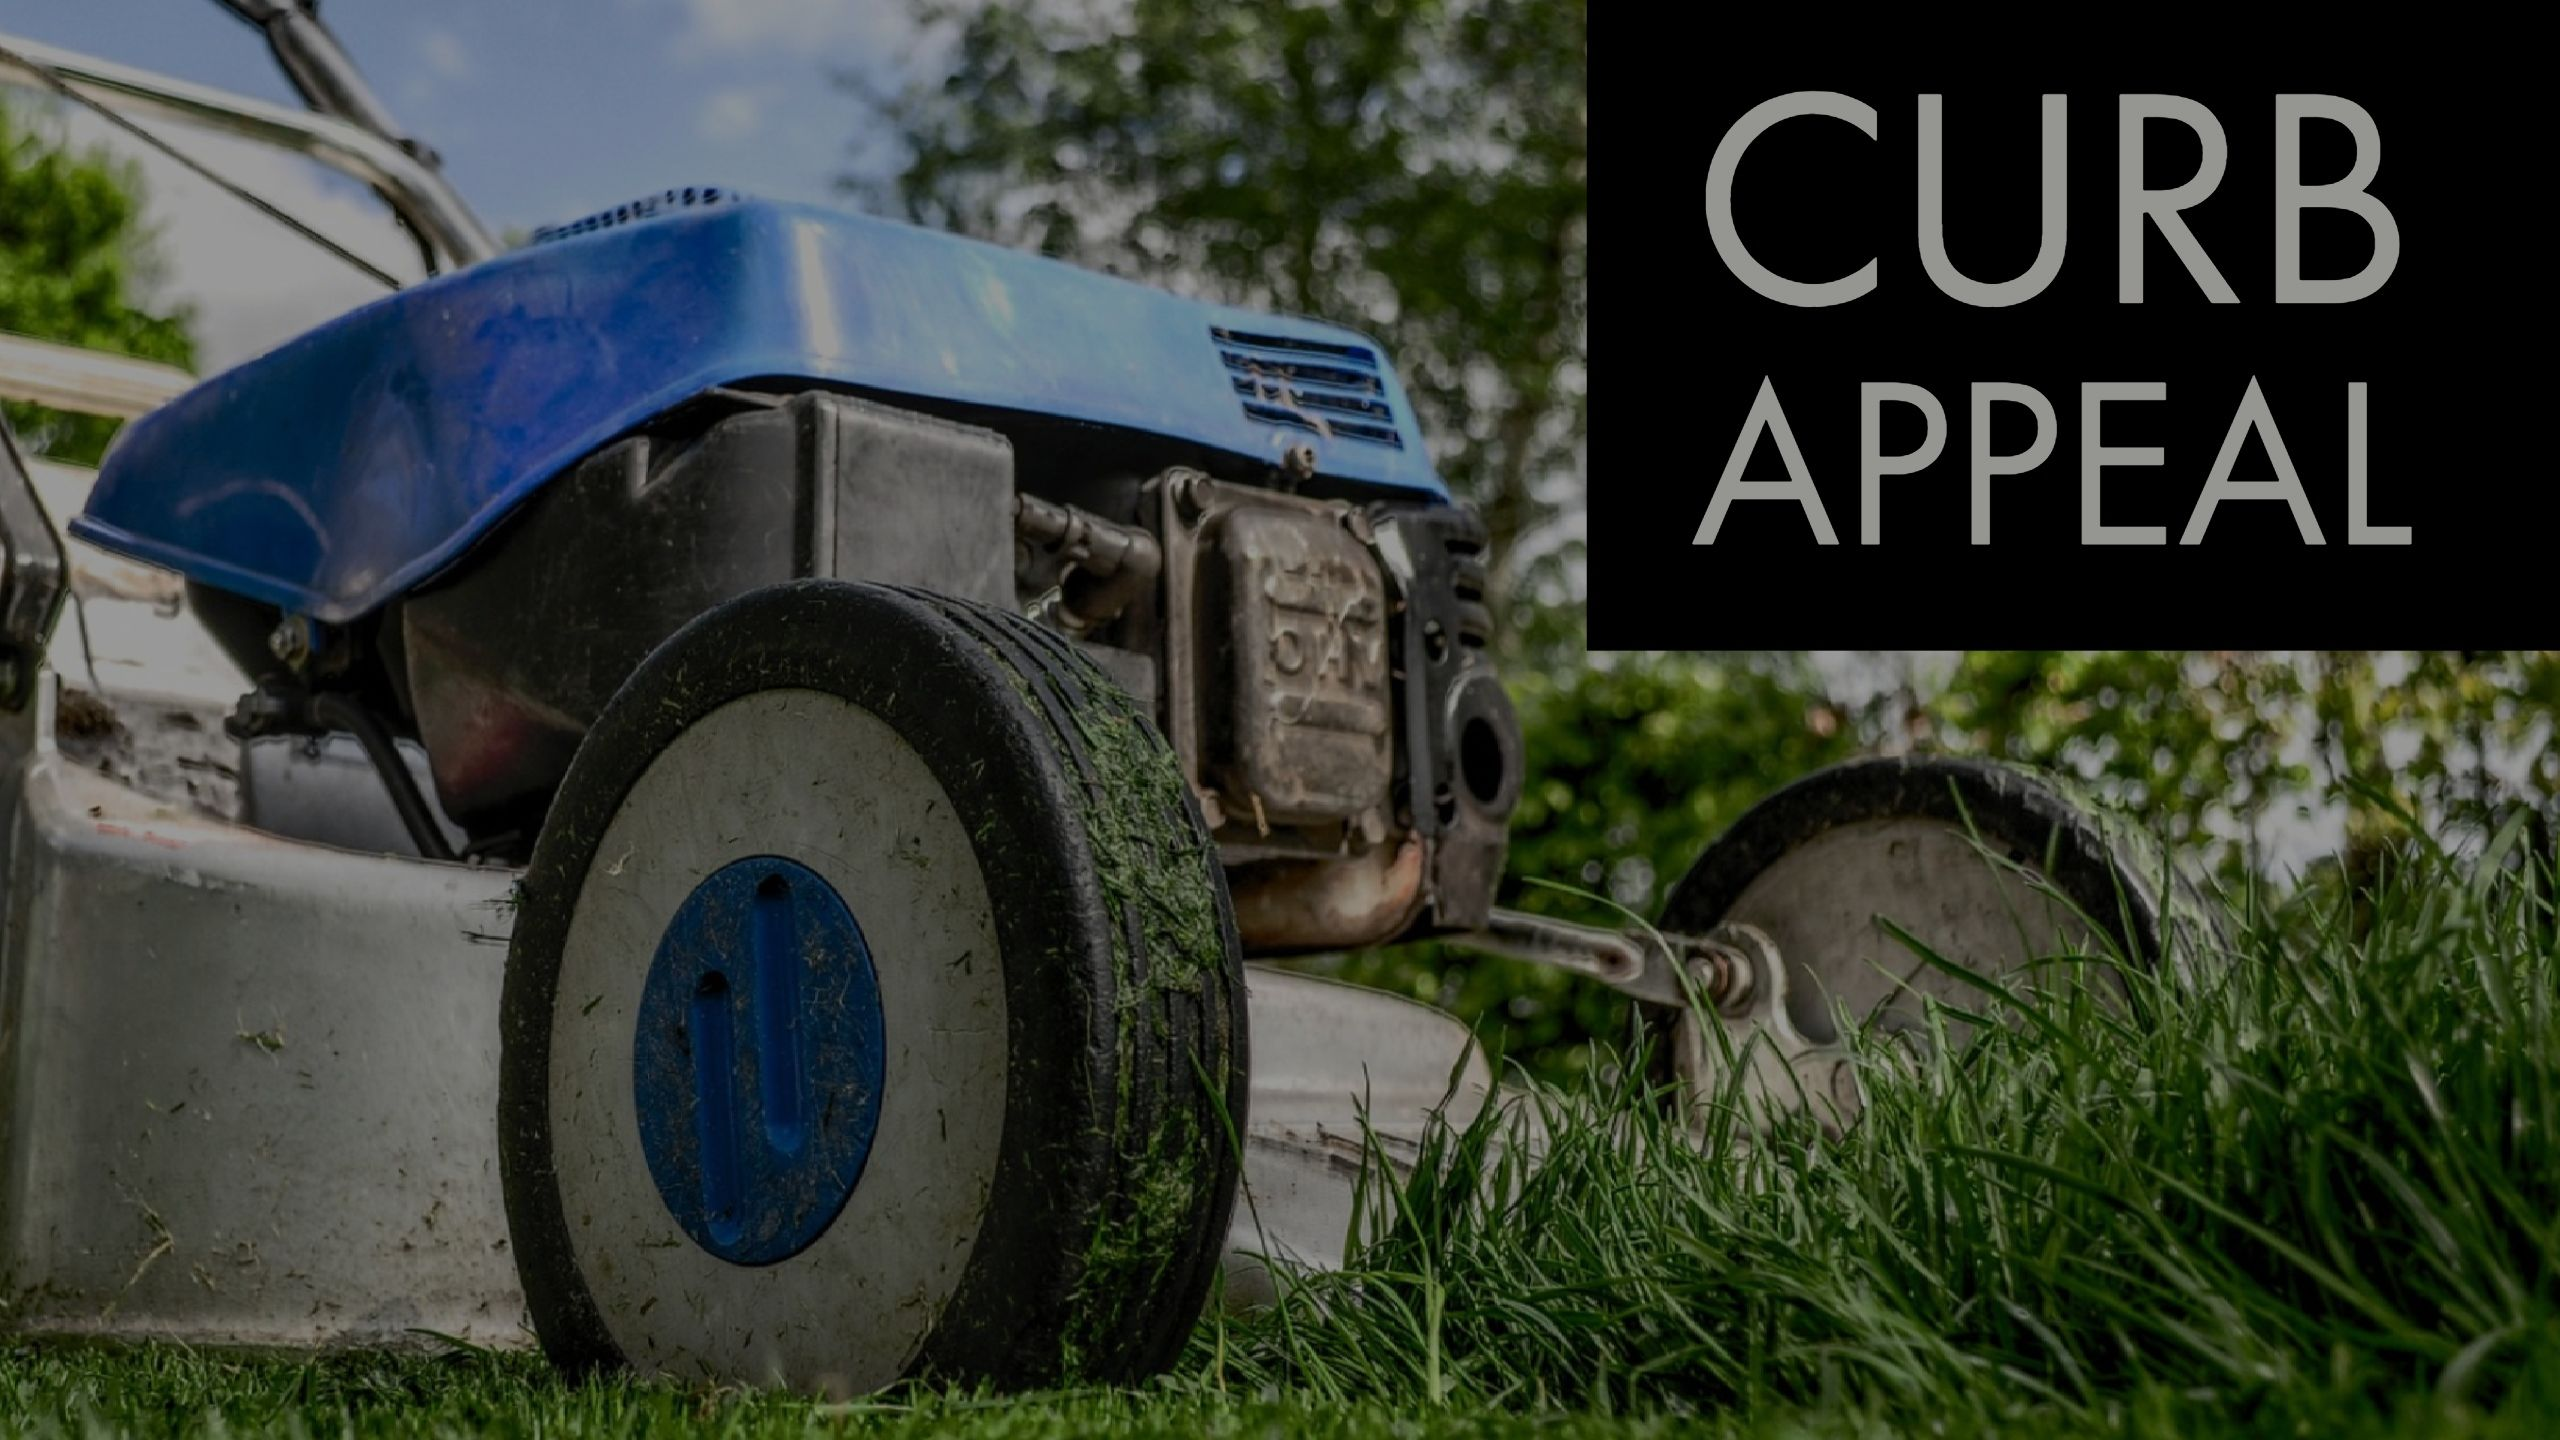 Curb Appeal with Grass Roots Lawn & Landscape